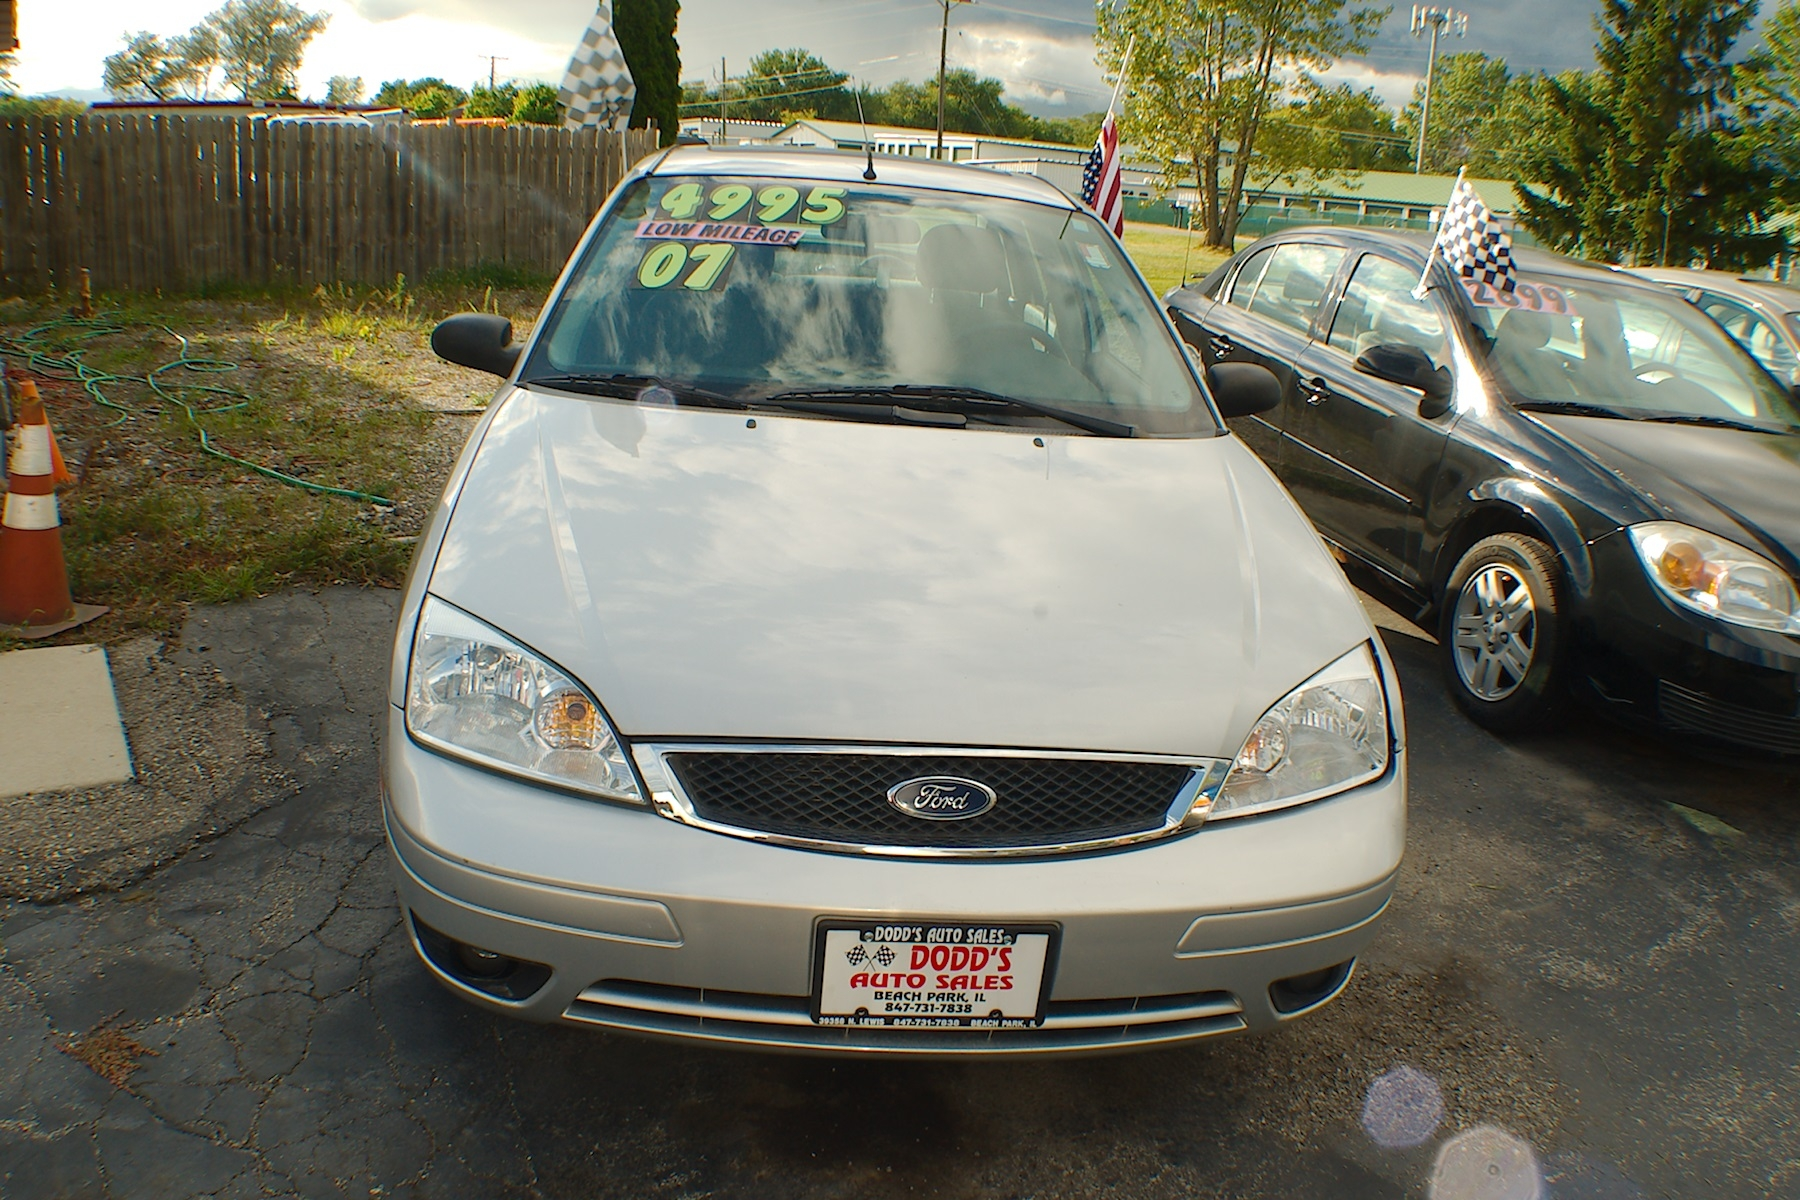 2007 Ford Focus SES Silver Sedan Used Car Sale Gurnee Kenosha Mchenry Chicago Illinois